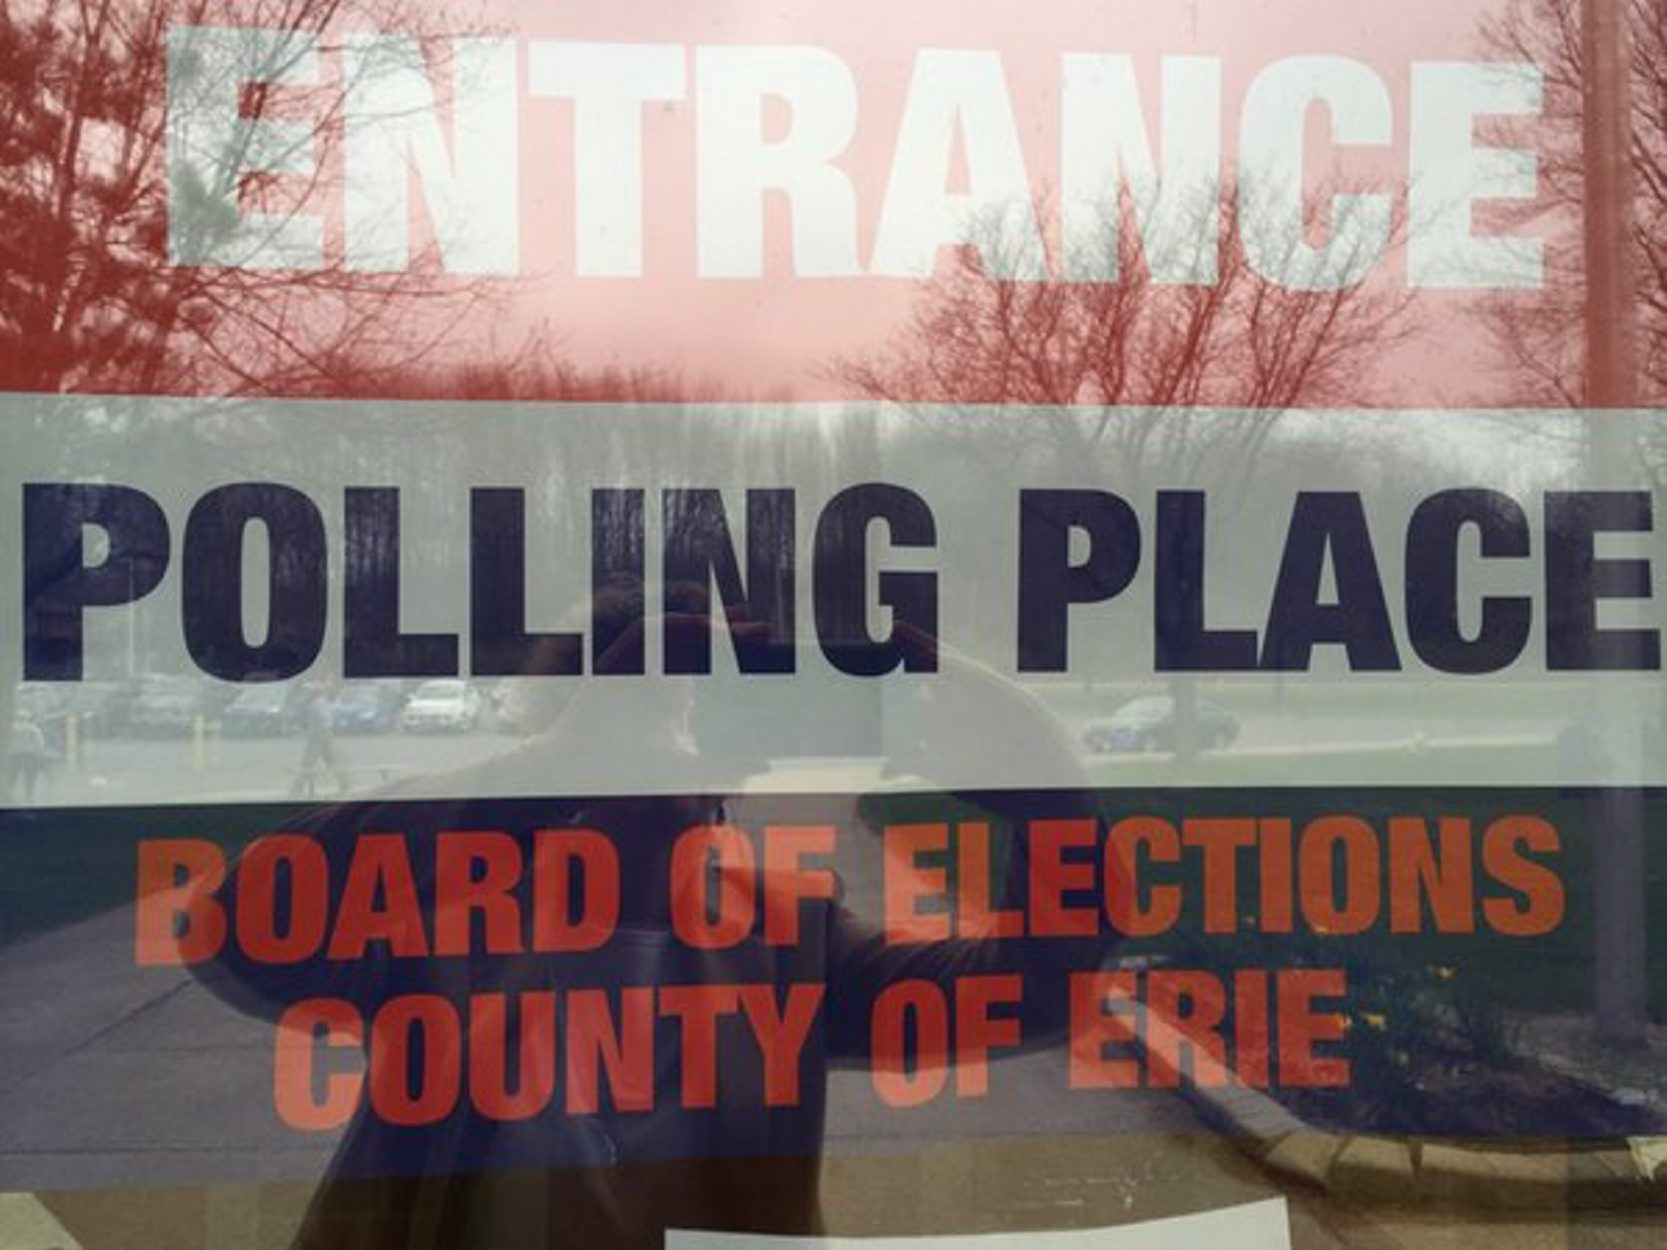 Polls in Erie County opened at 6 a.m., while voting in other Western New York counties starts at noon.